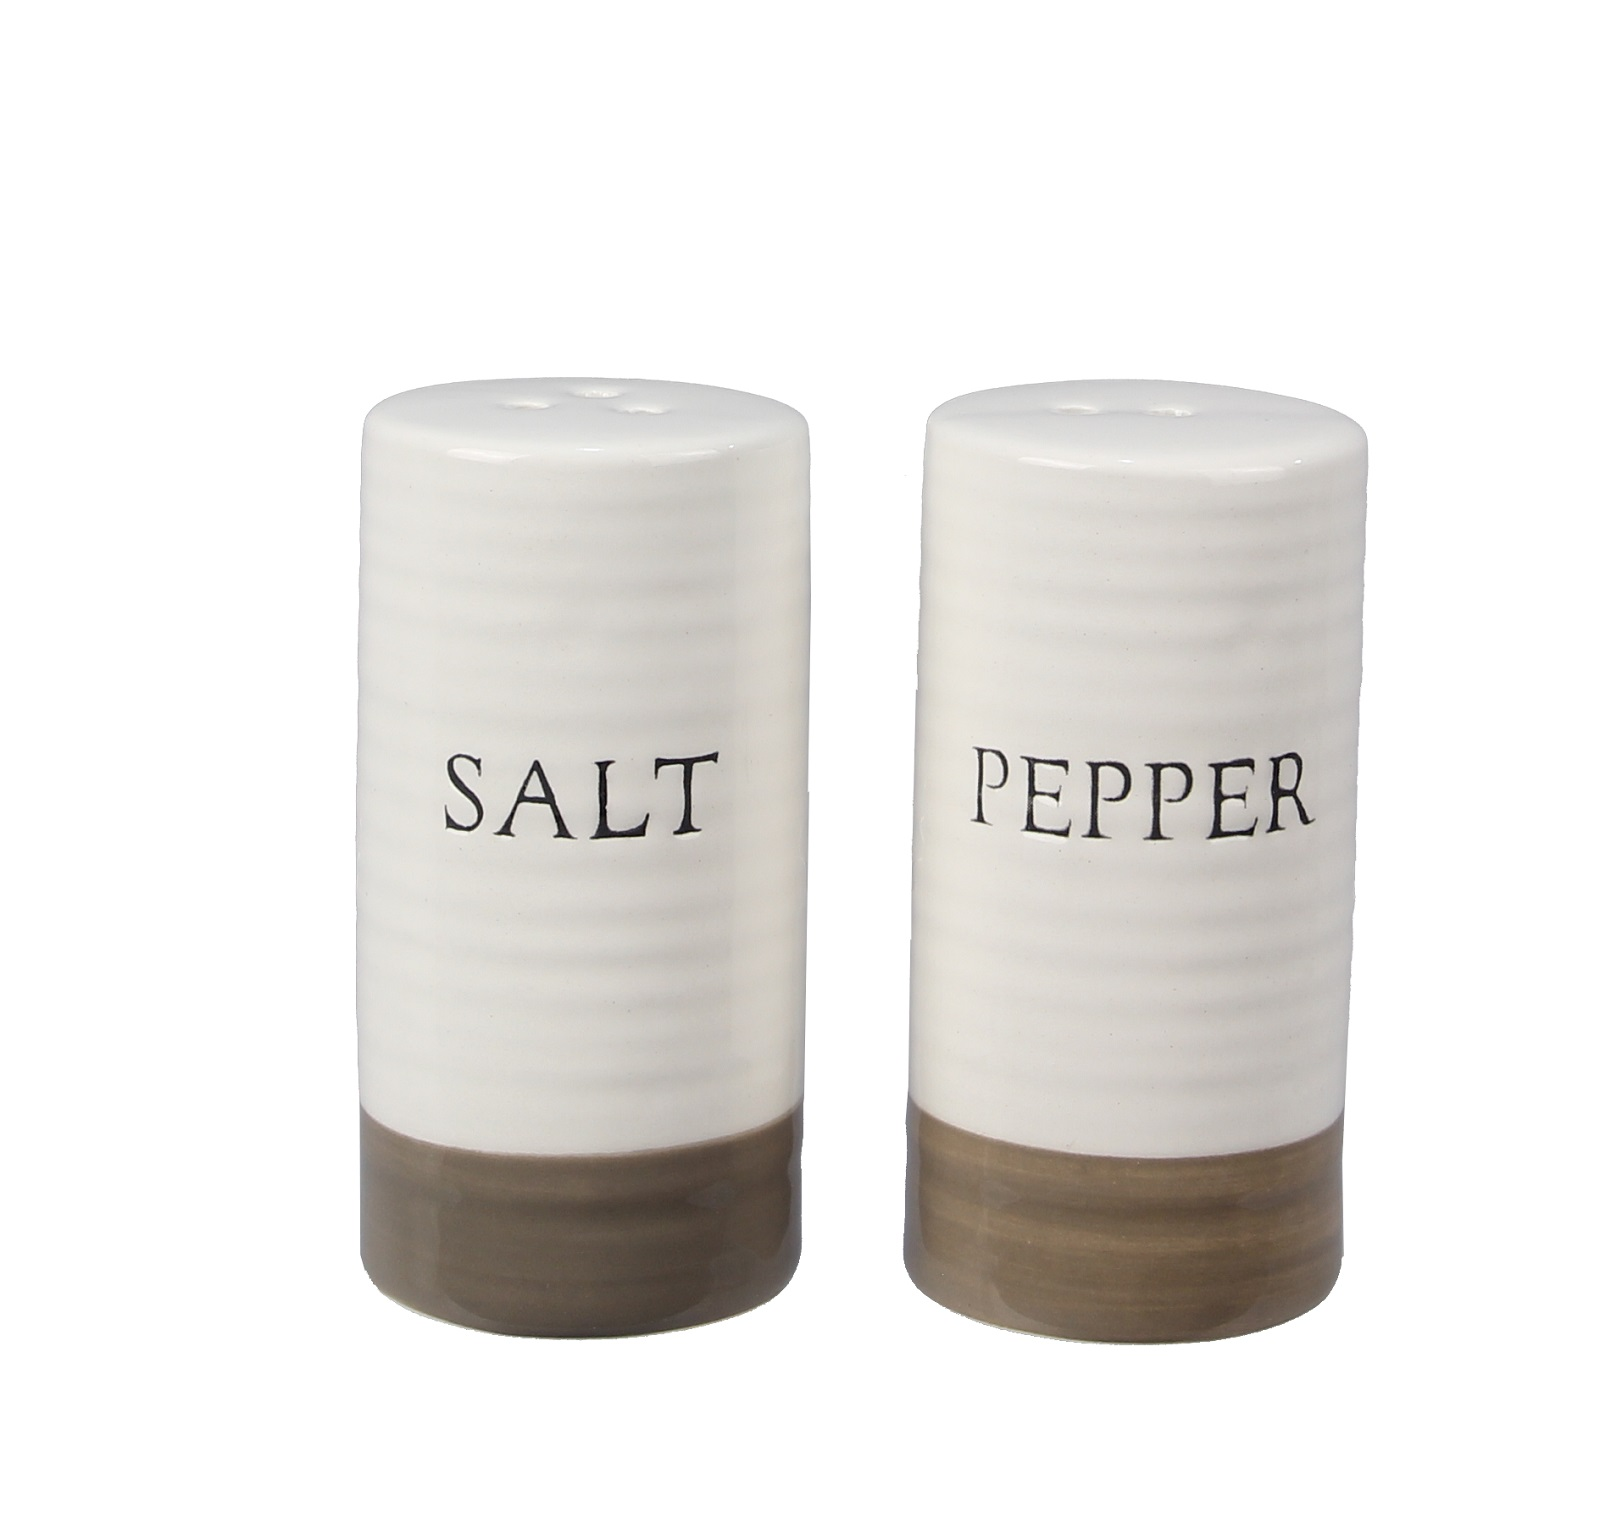 Salt And Pepper Shaker Set Debossed Ceramic Farmhouse Style Walmart Com Walmart Com